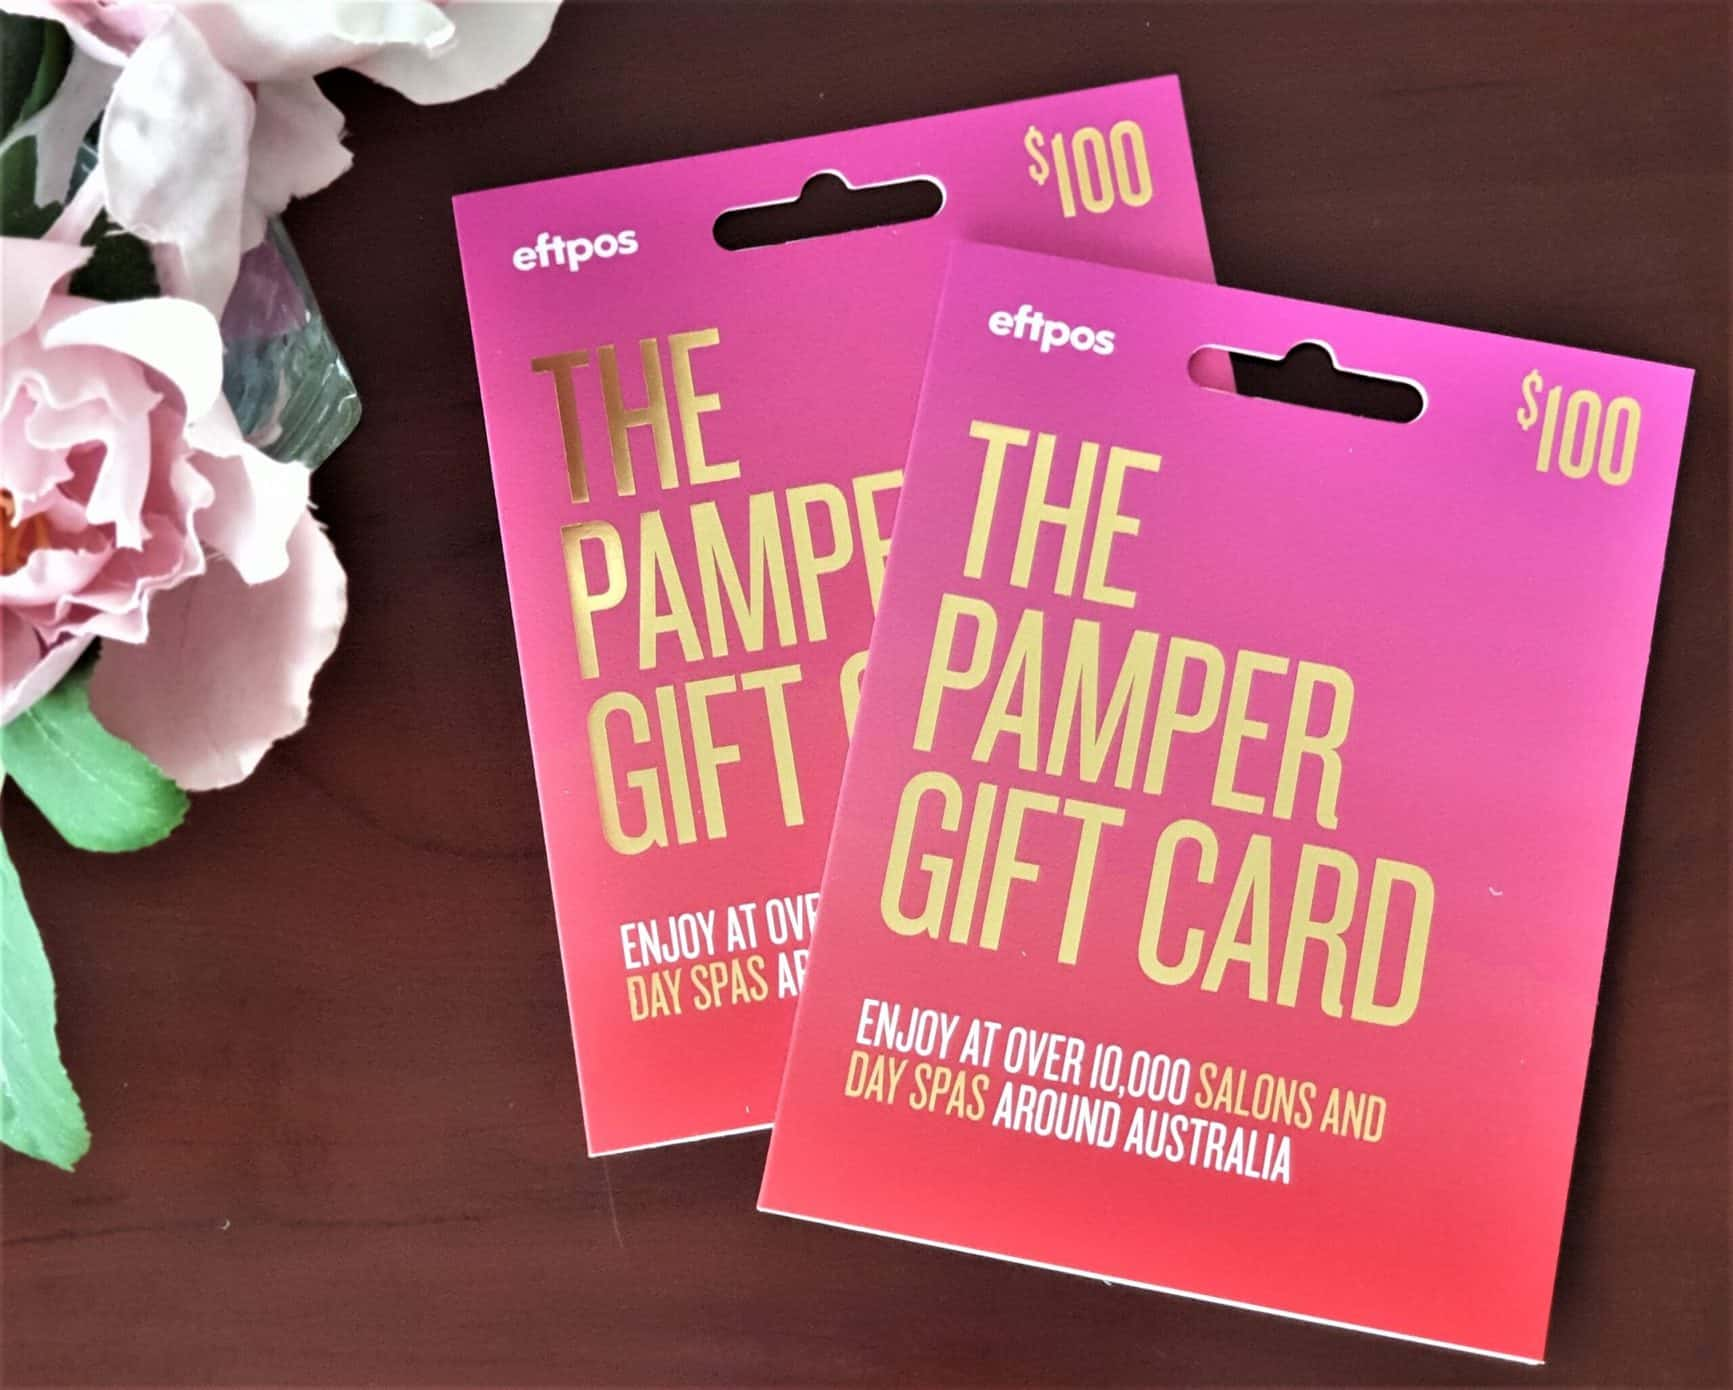 WSS Beauty: Pamper Gift Cards. Win 1 of 2 $100 Gift Cards.